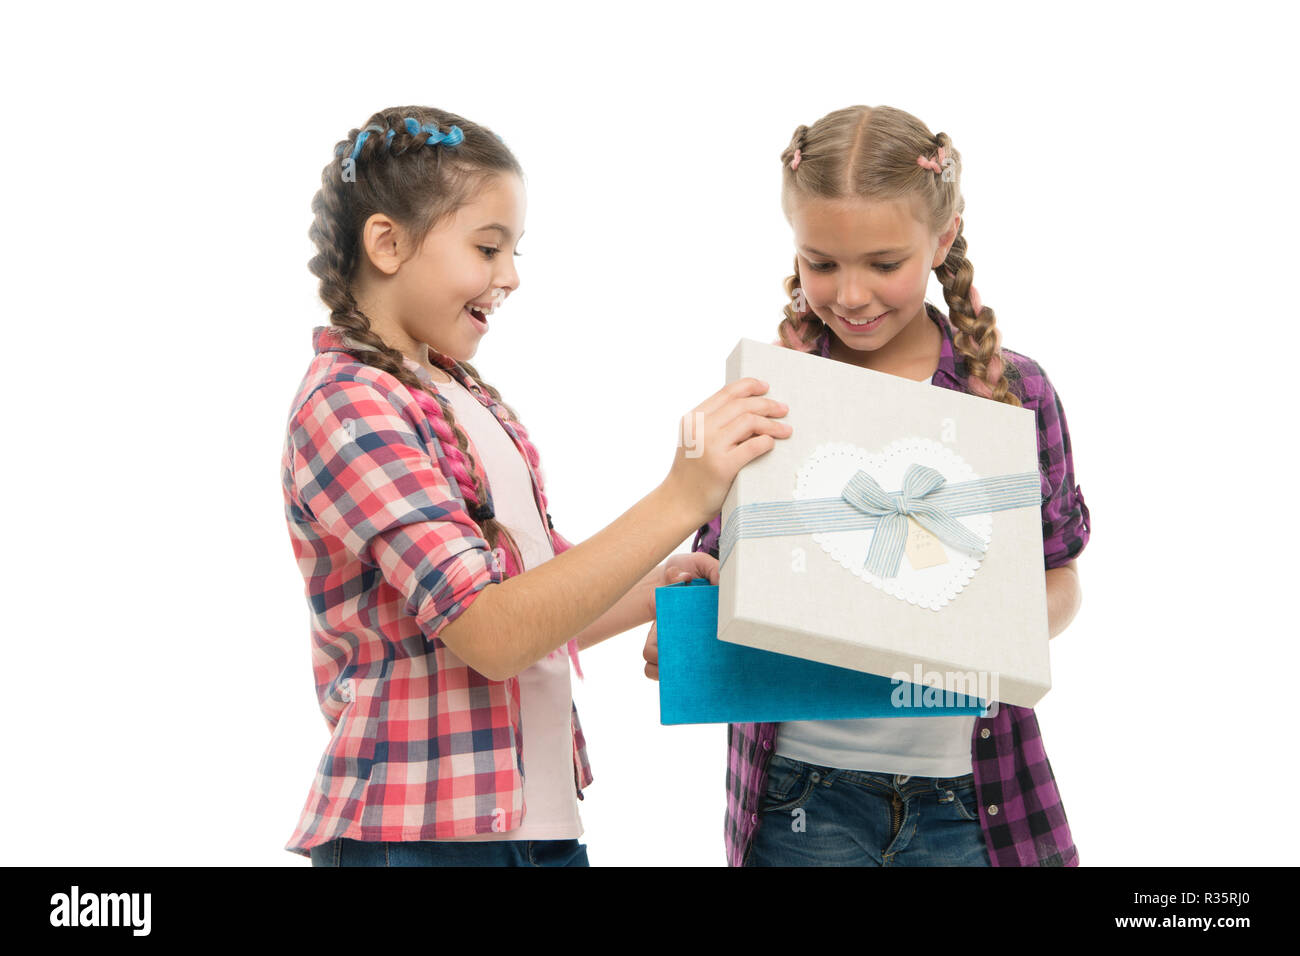 Kids little girls with braids hairstyle hold gift box. Children excited about unpacking gift. Small cute girls sisters received holiday gift. Dreams come true. Best birthday and christmas gifts. - Stock Image